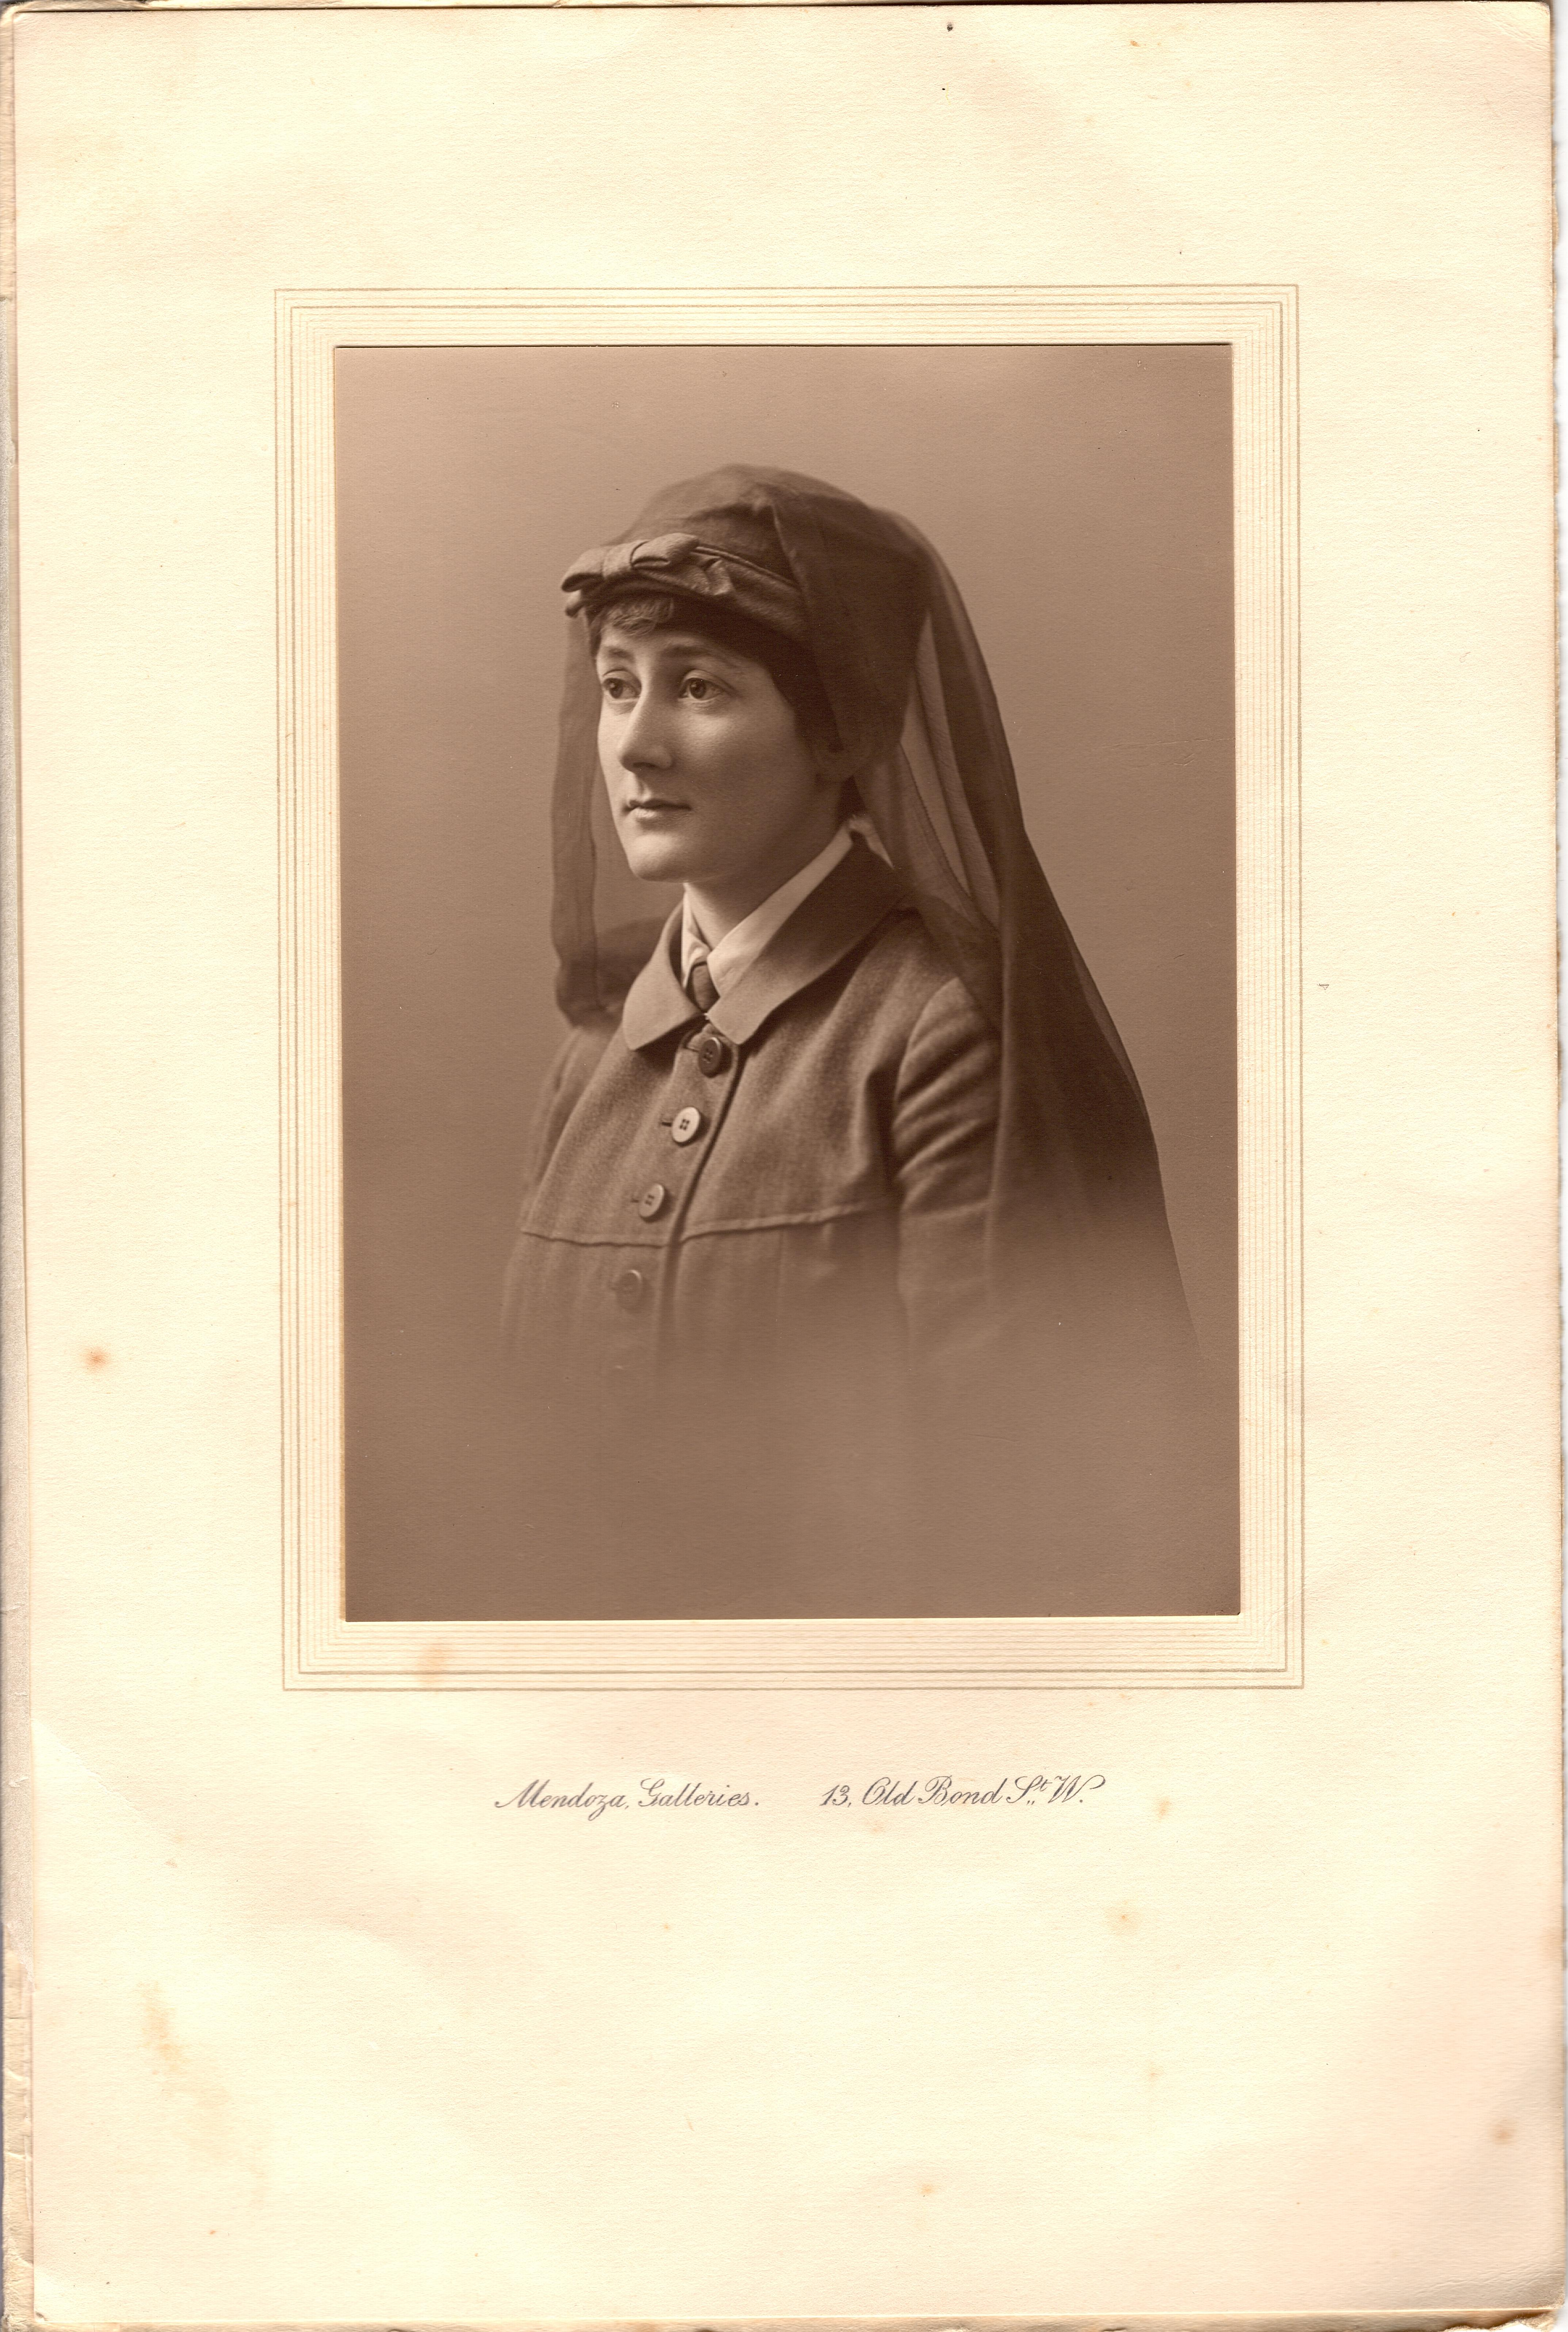 Black and white photograph of Nina Last in her uniform